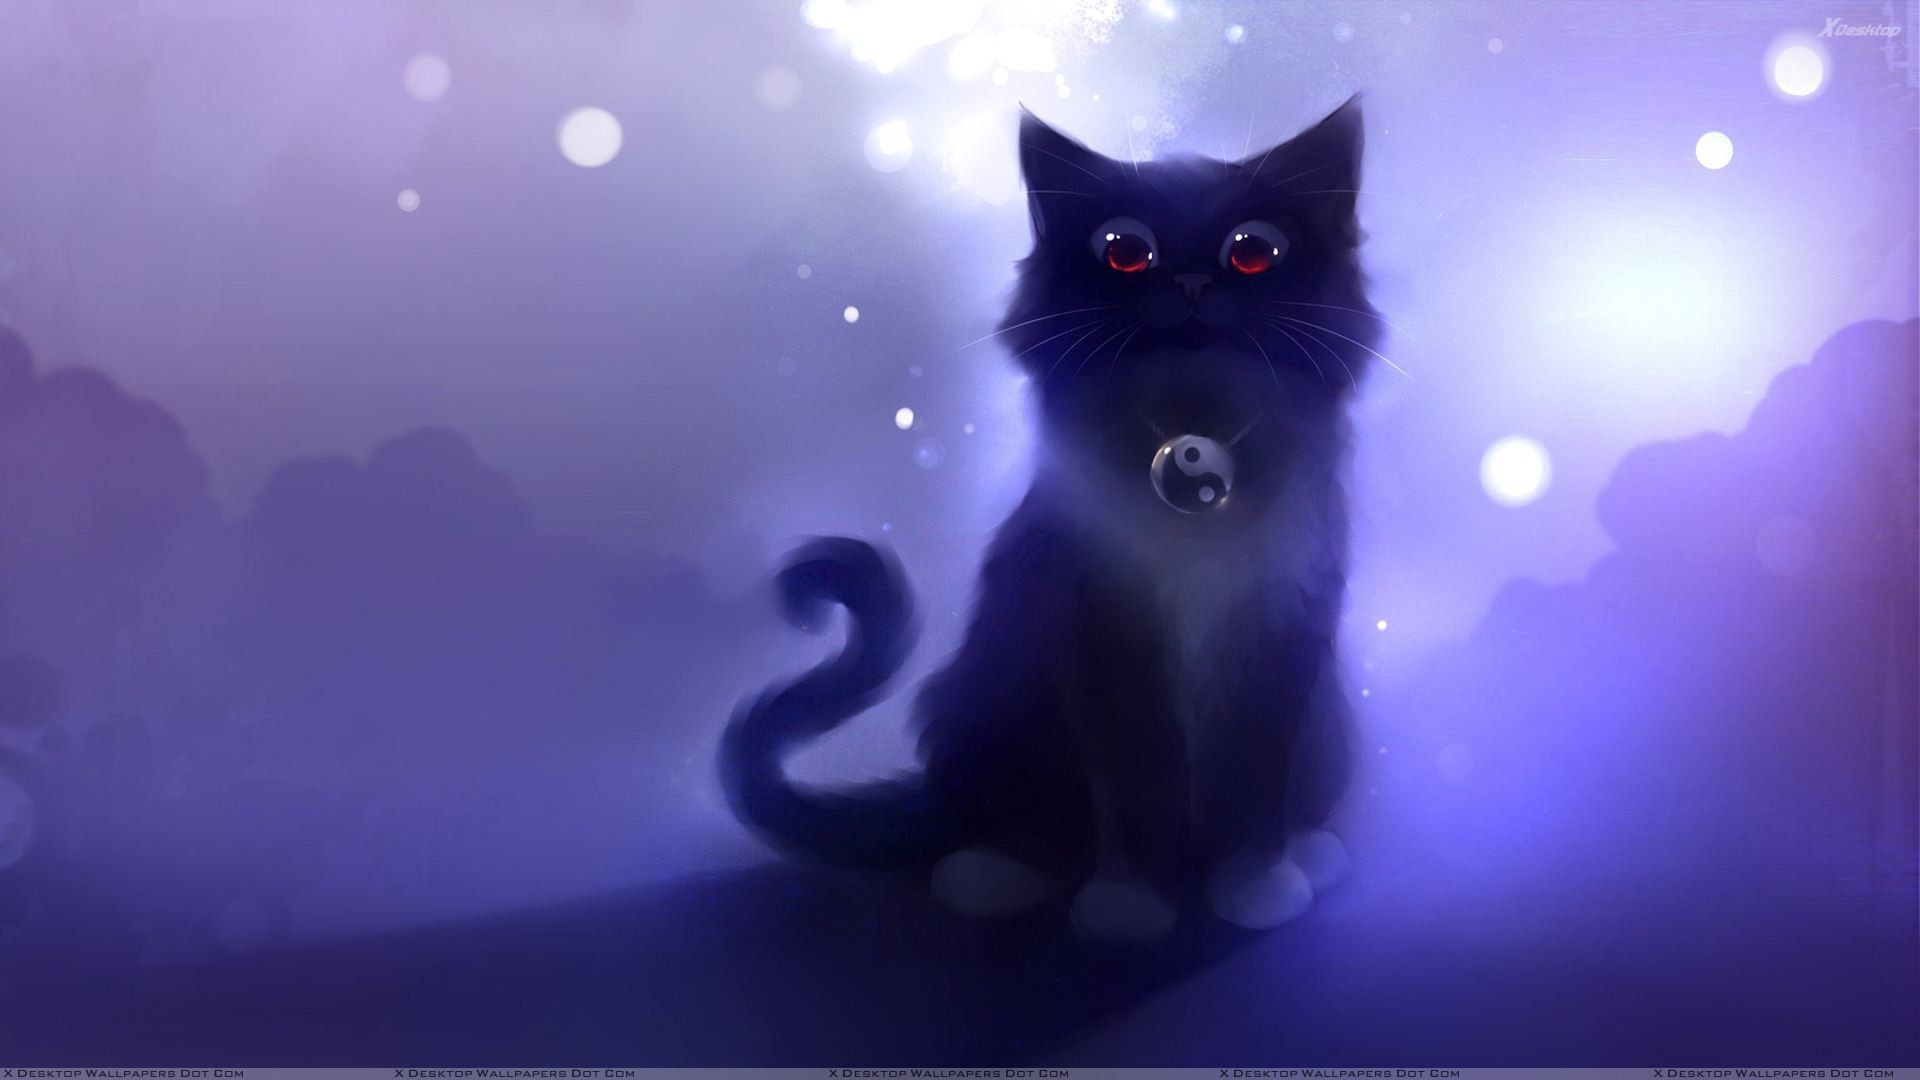 cat wallpapers and screensavers (75+ images)